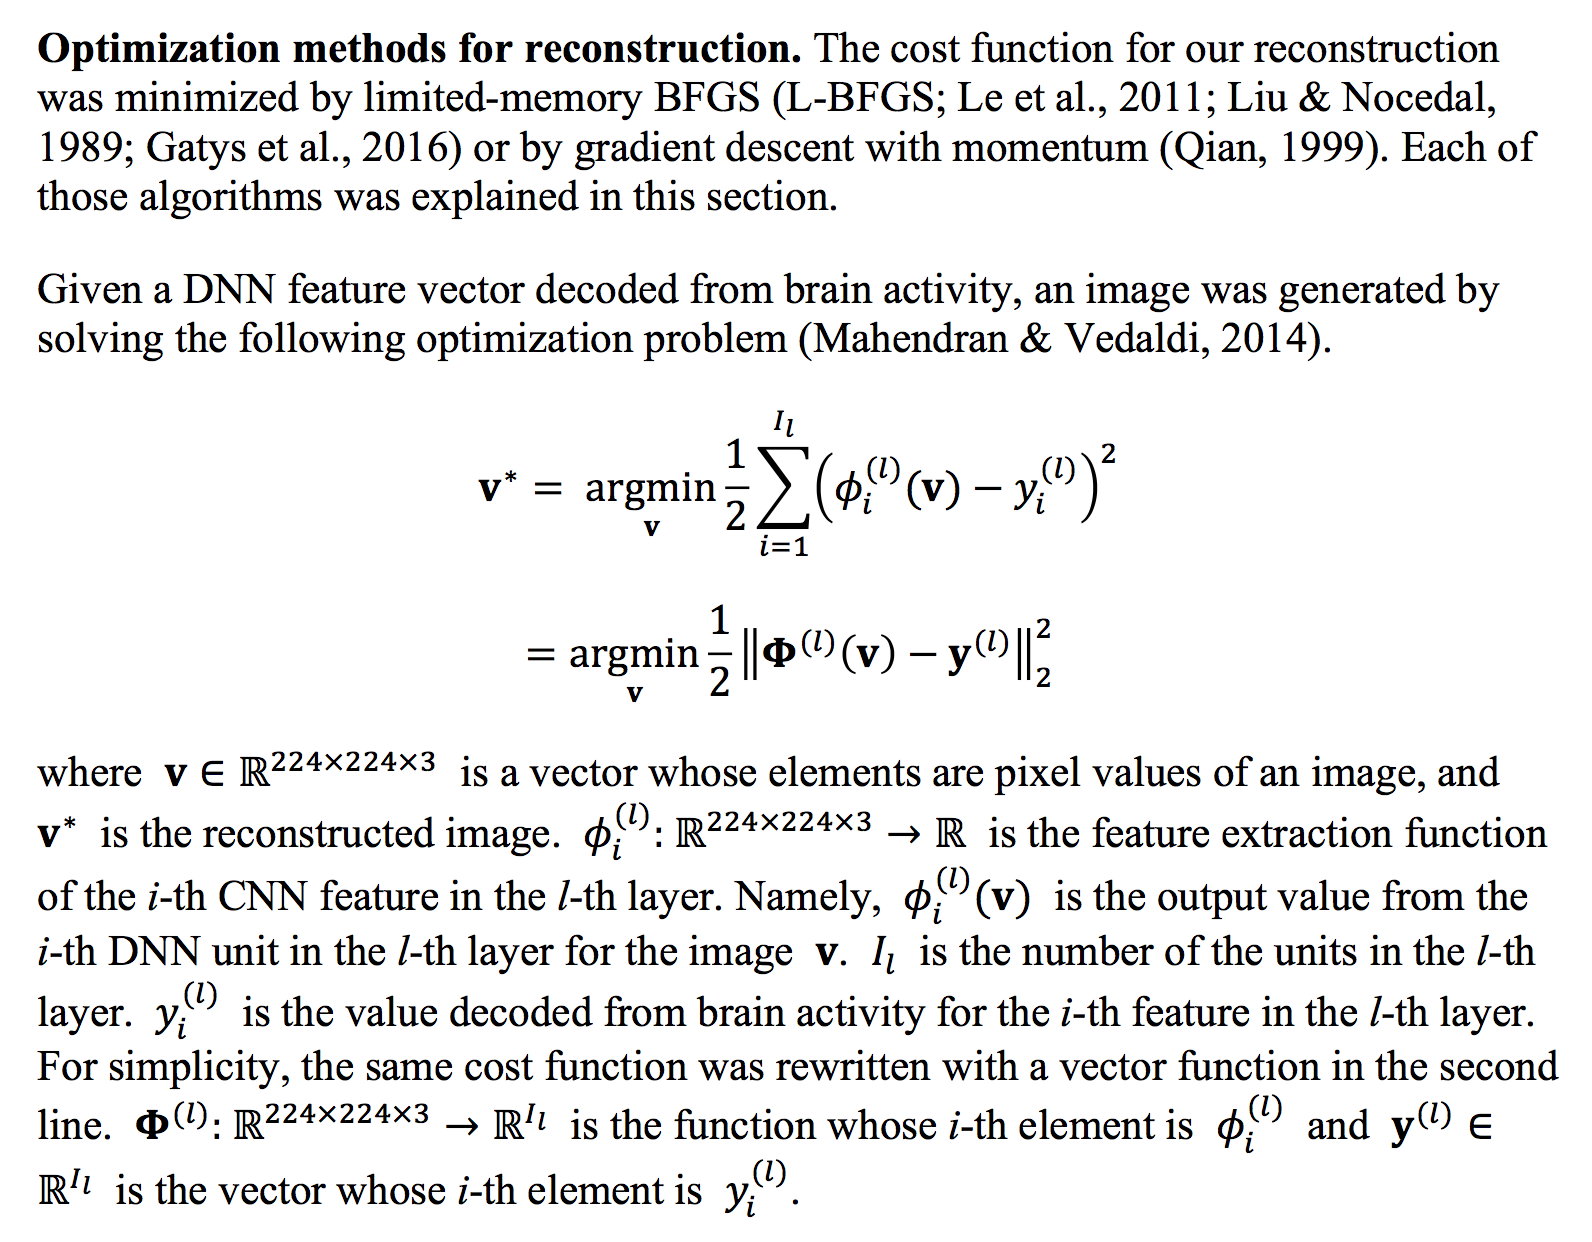 An excerpt from the paper on the generative process for finding the perceptual image. [Source](https://www.biorxiv.org/content/biorxiv/early/2017/12/30/240317.full.pdf)